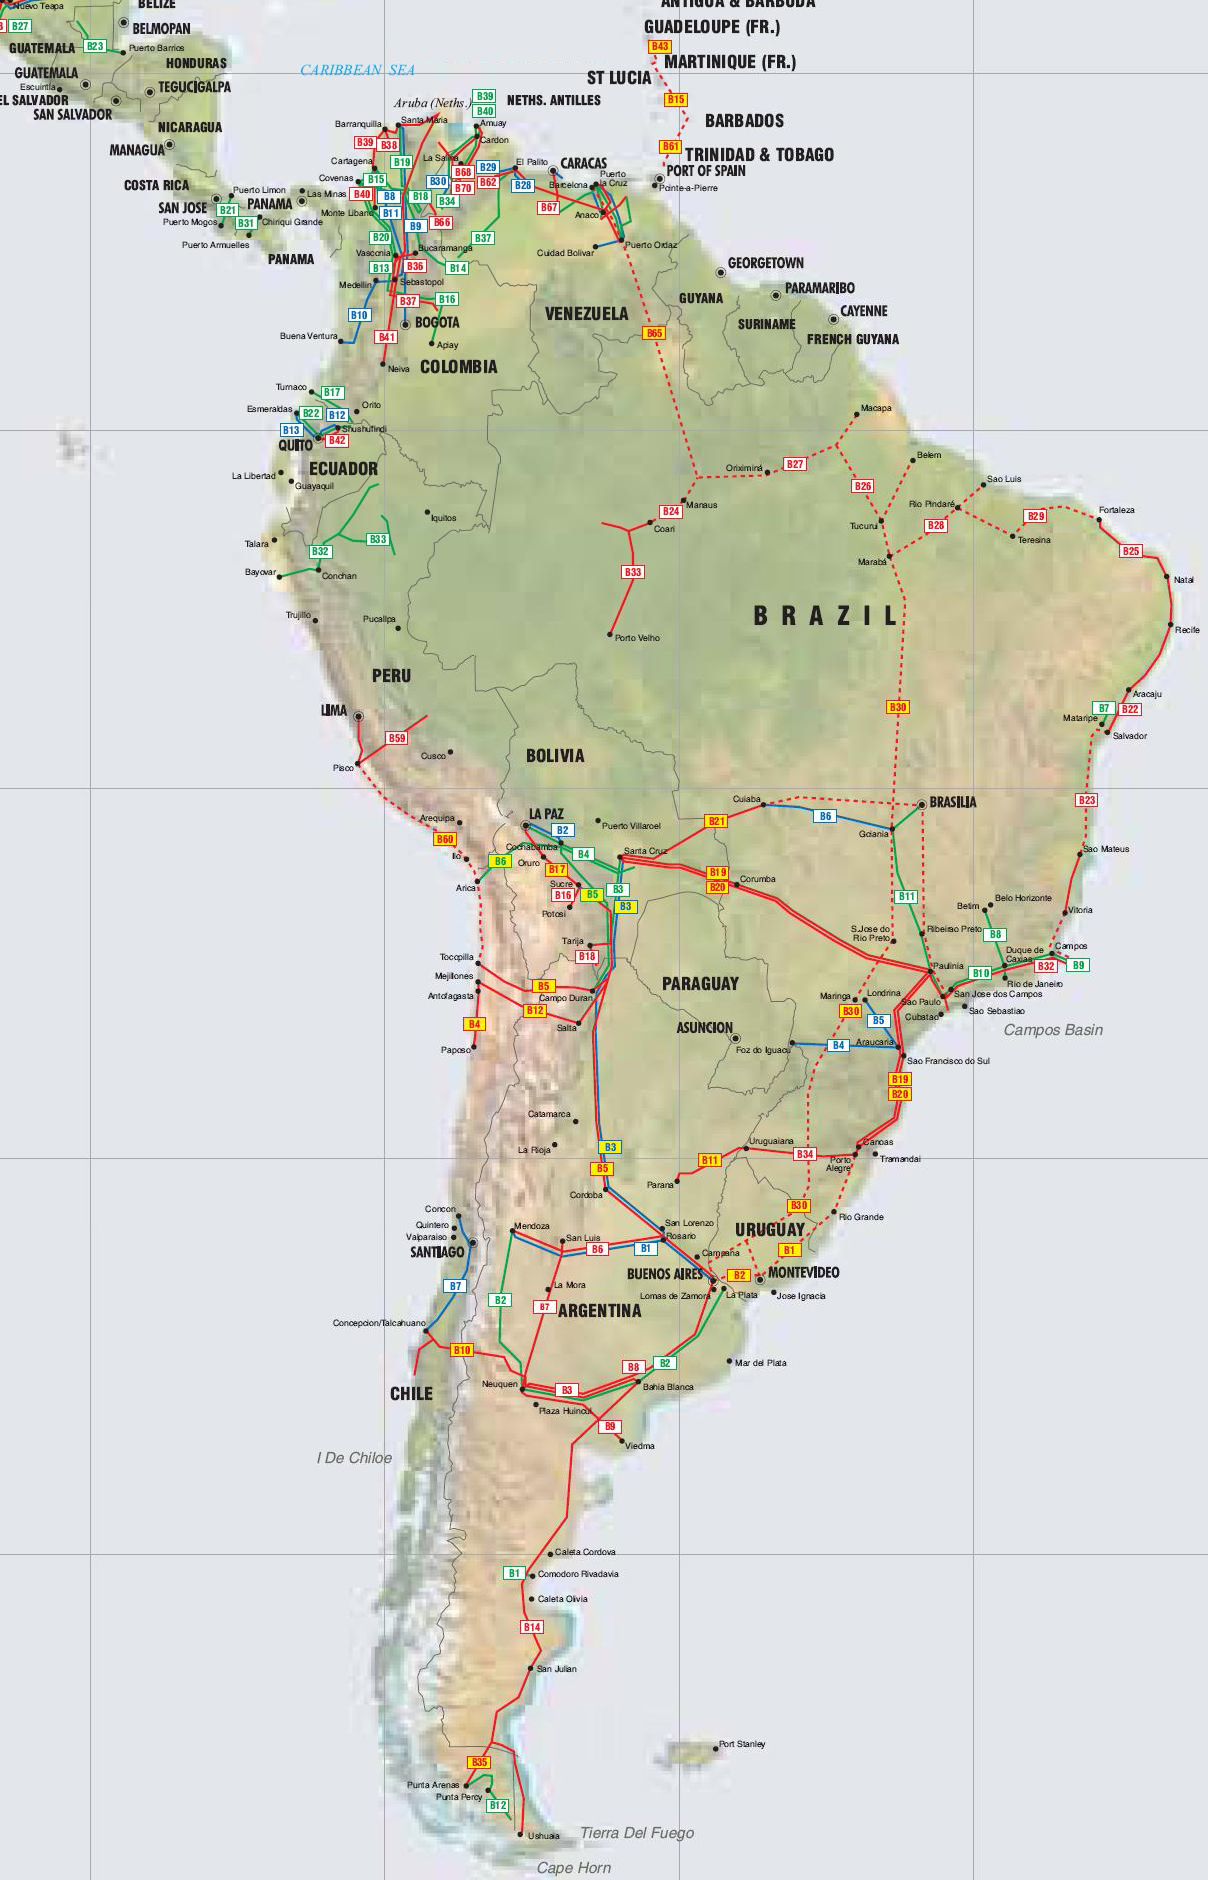 Central America Caribbean and South America Pipelines map  Crude